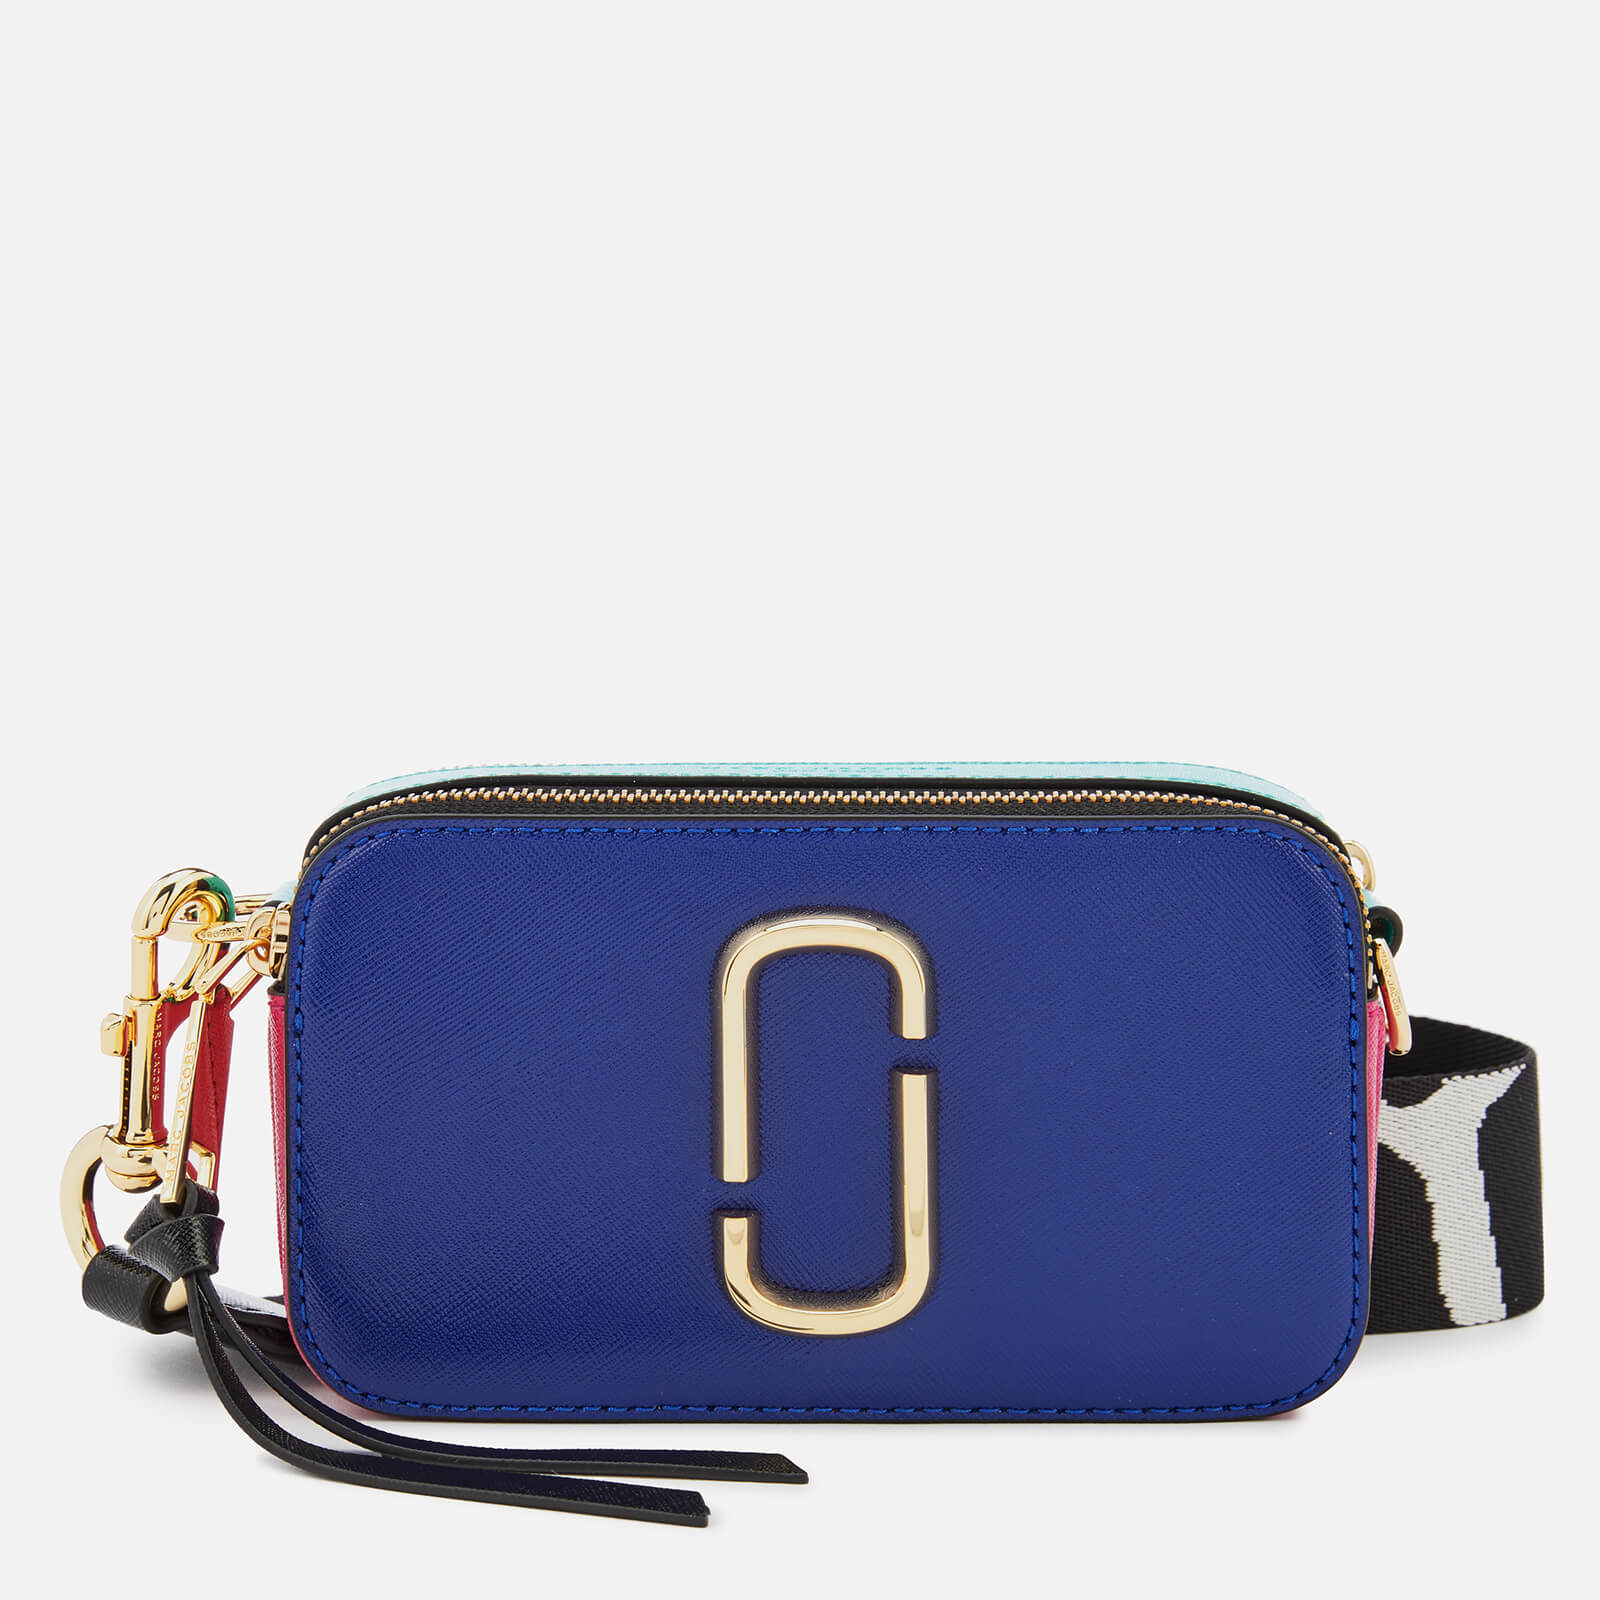 Marc Jacobs Women s Snapshot Cross Body Bag - Academy Blue Multi - Free UK  Delivery over £50 aa079c287f693